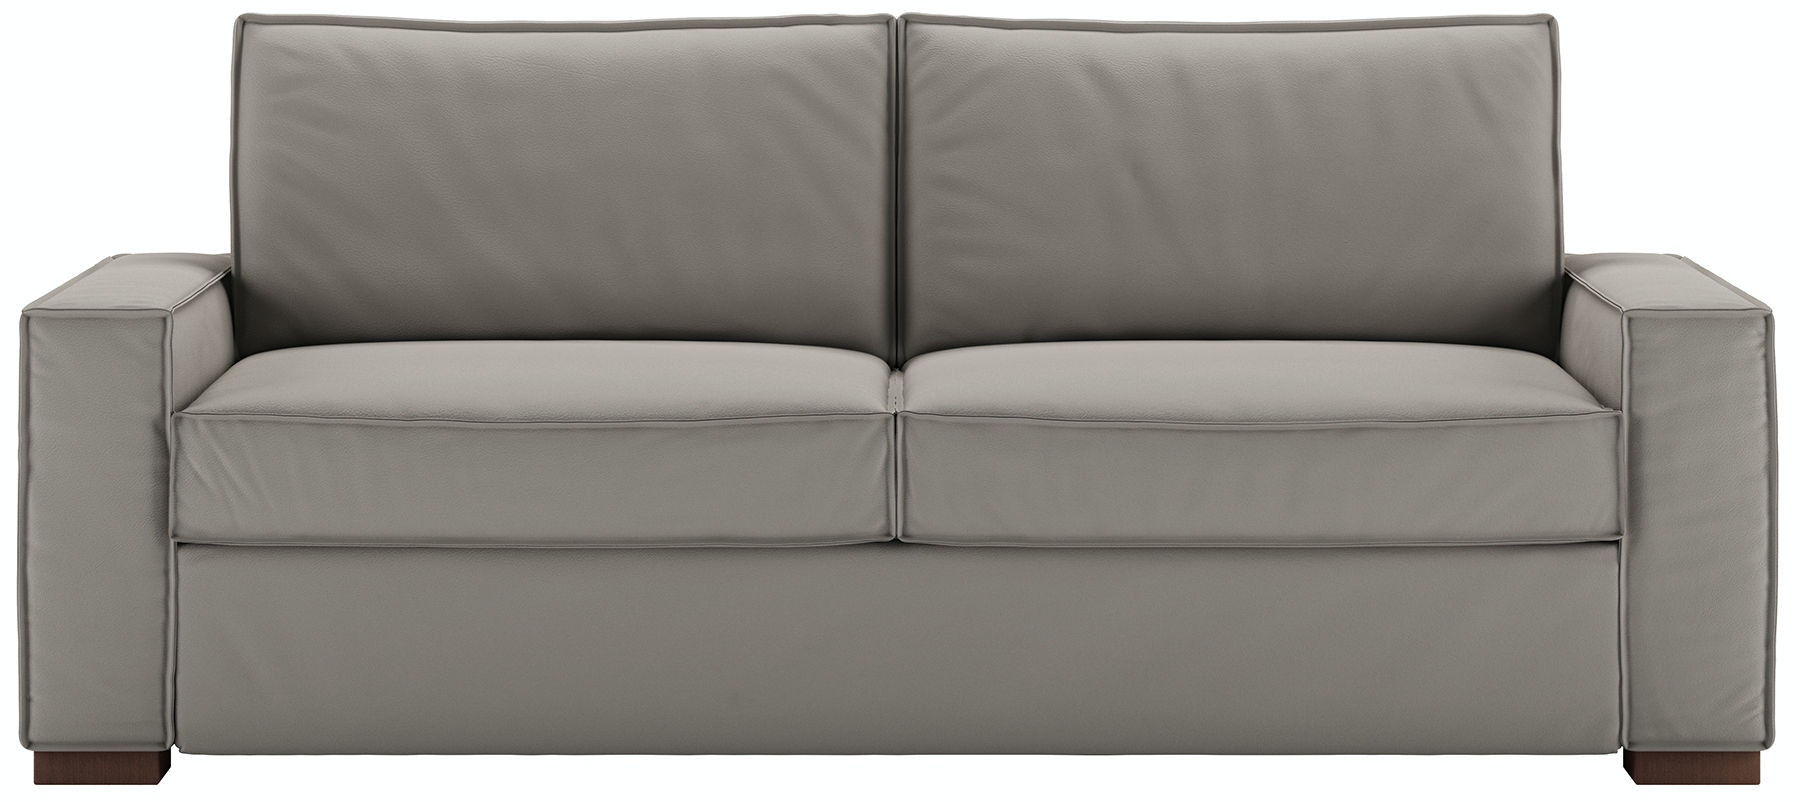 American Leather Sofa Sleeper Queen Size MDD SO2 QS